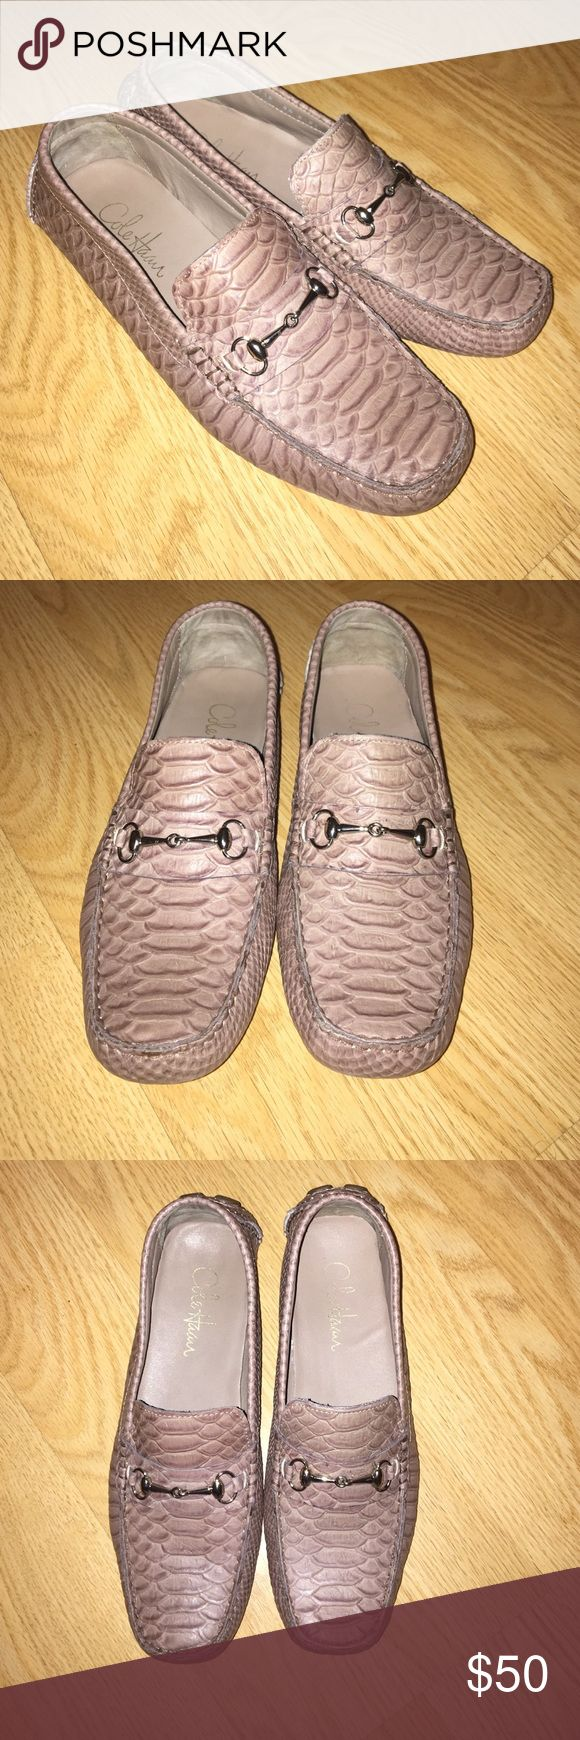 Cole Haan Driving Loafers **Like new** Cole Haan driving loafers. Nude snakeskin with silver hardware. VERY COMFORTABLE!! Cole Haan Shoes Flats & Loafers